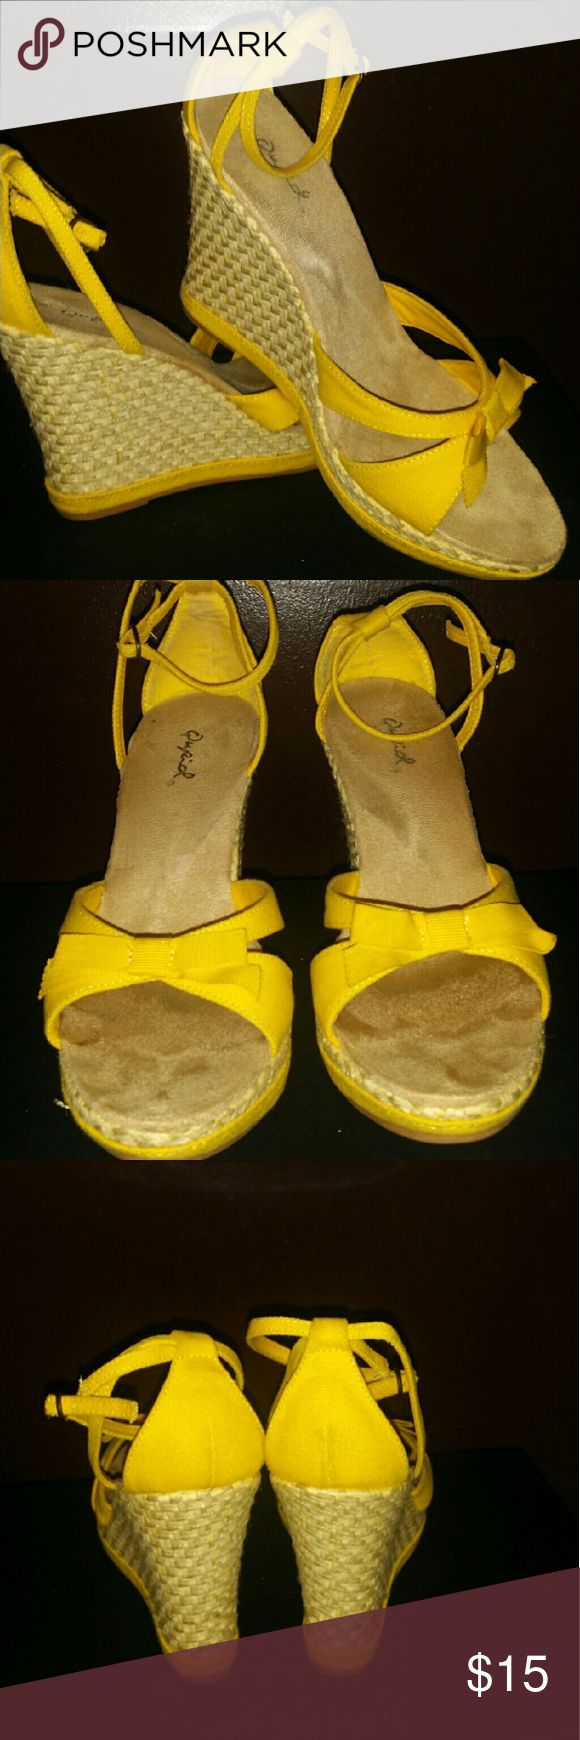 Yellow wedge heels Yellow canvas wedge heels Qupid  Shoes Wedges